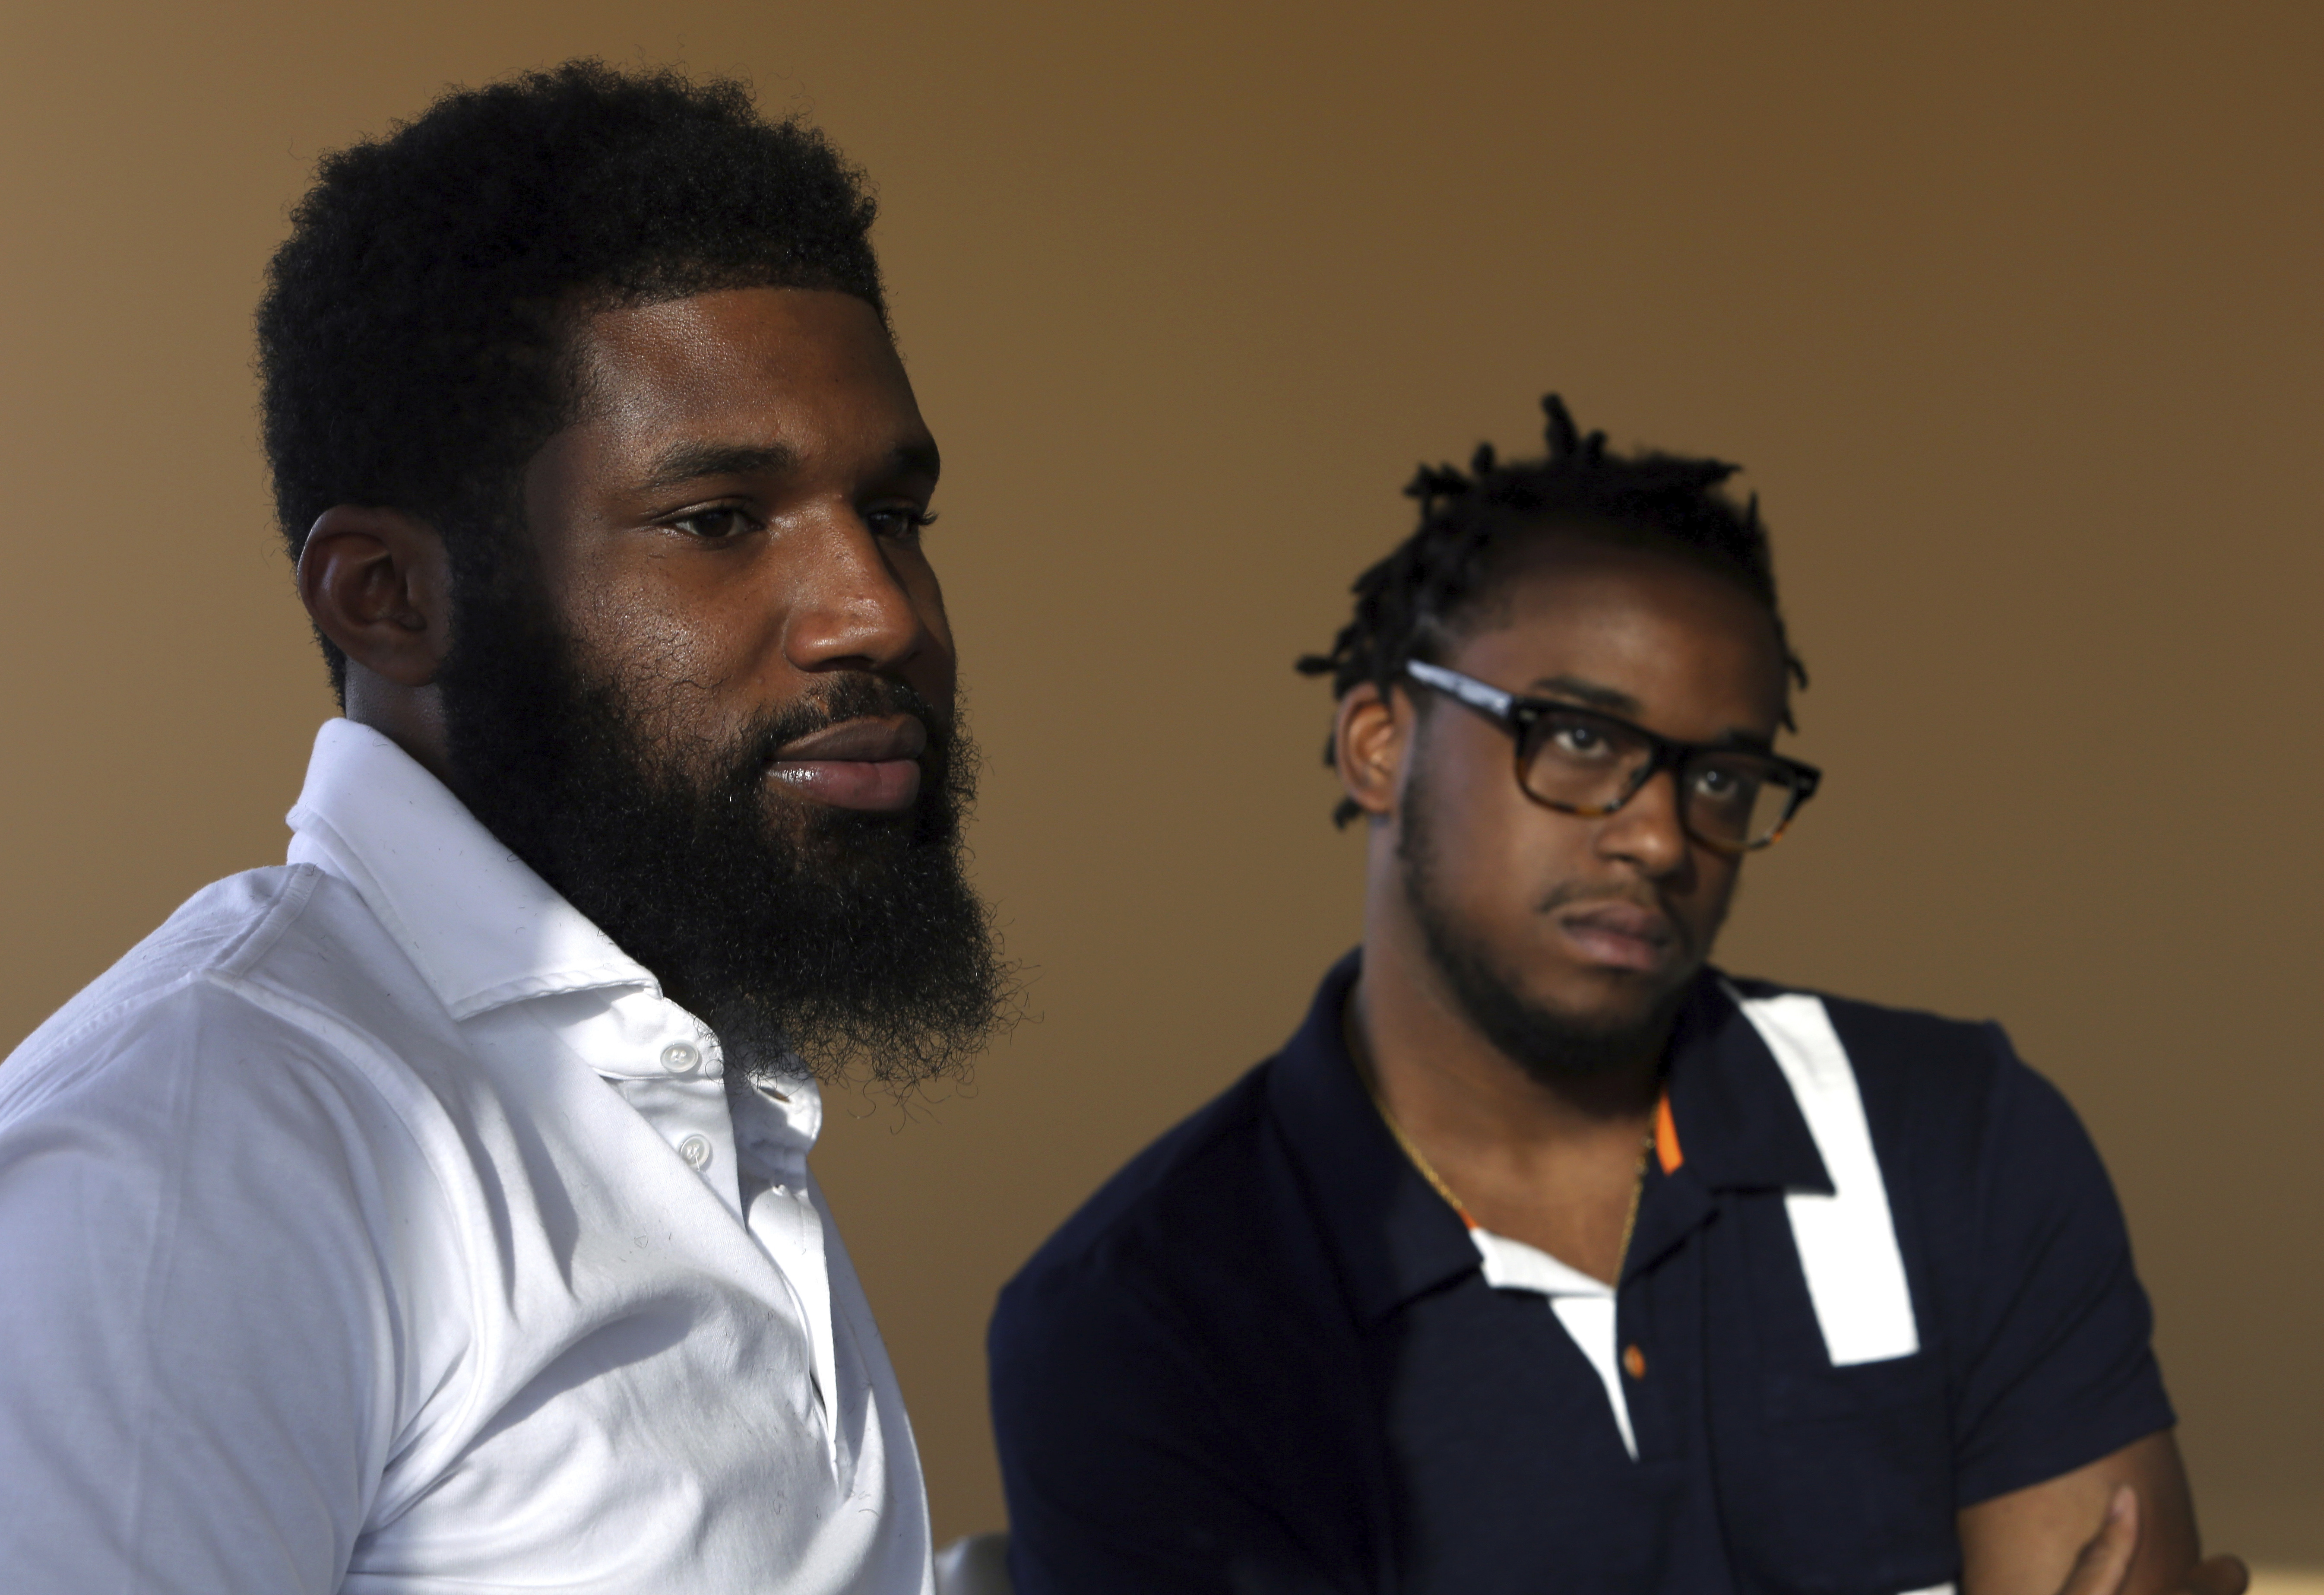 Rashon Nelson, left, and Donte Robinson, right, were arrested at a Philadelphia Starbucks on April 12.